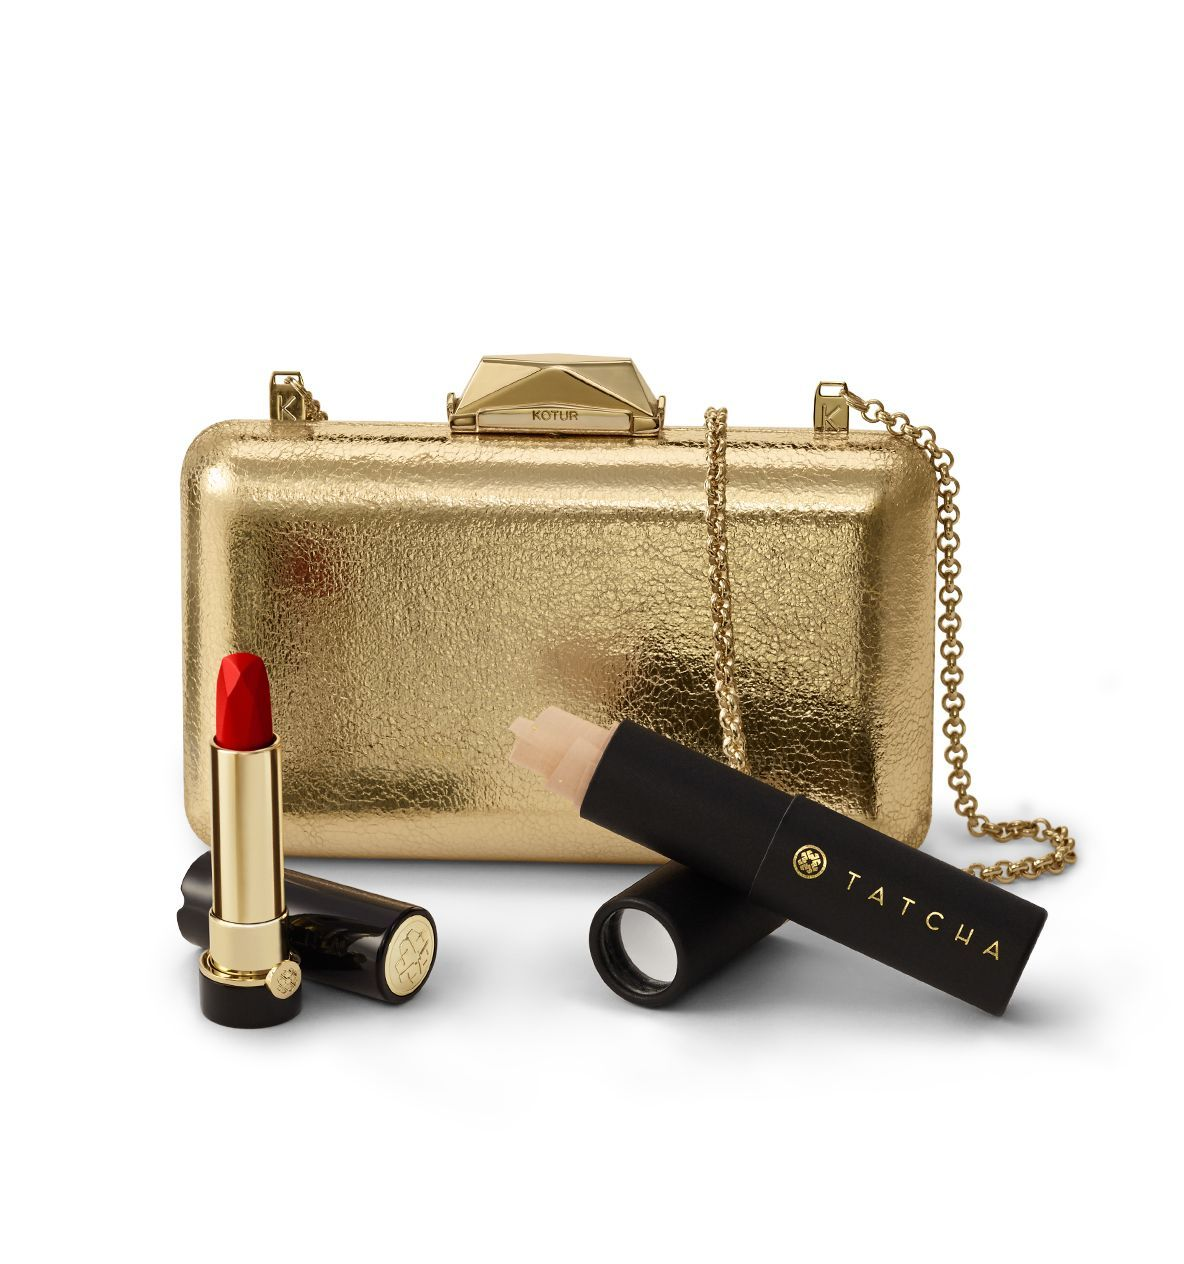 Big Spender The 8 Most Expensive Holiday Beauty Gifts